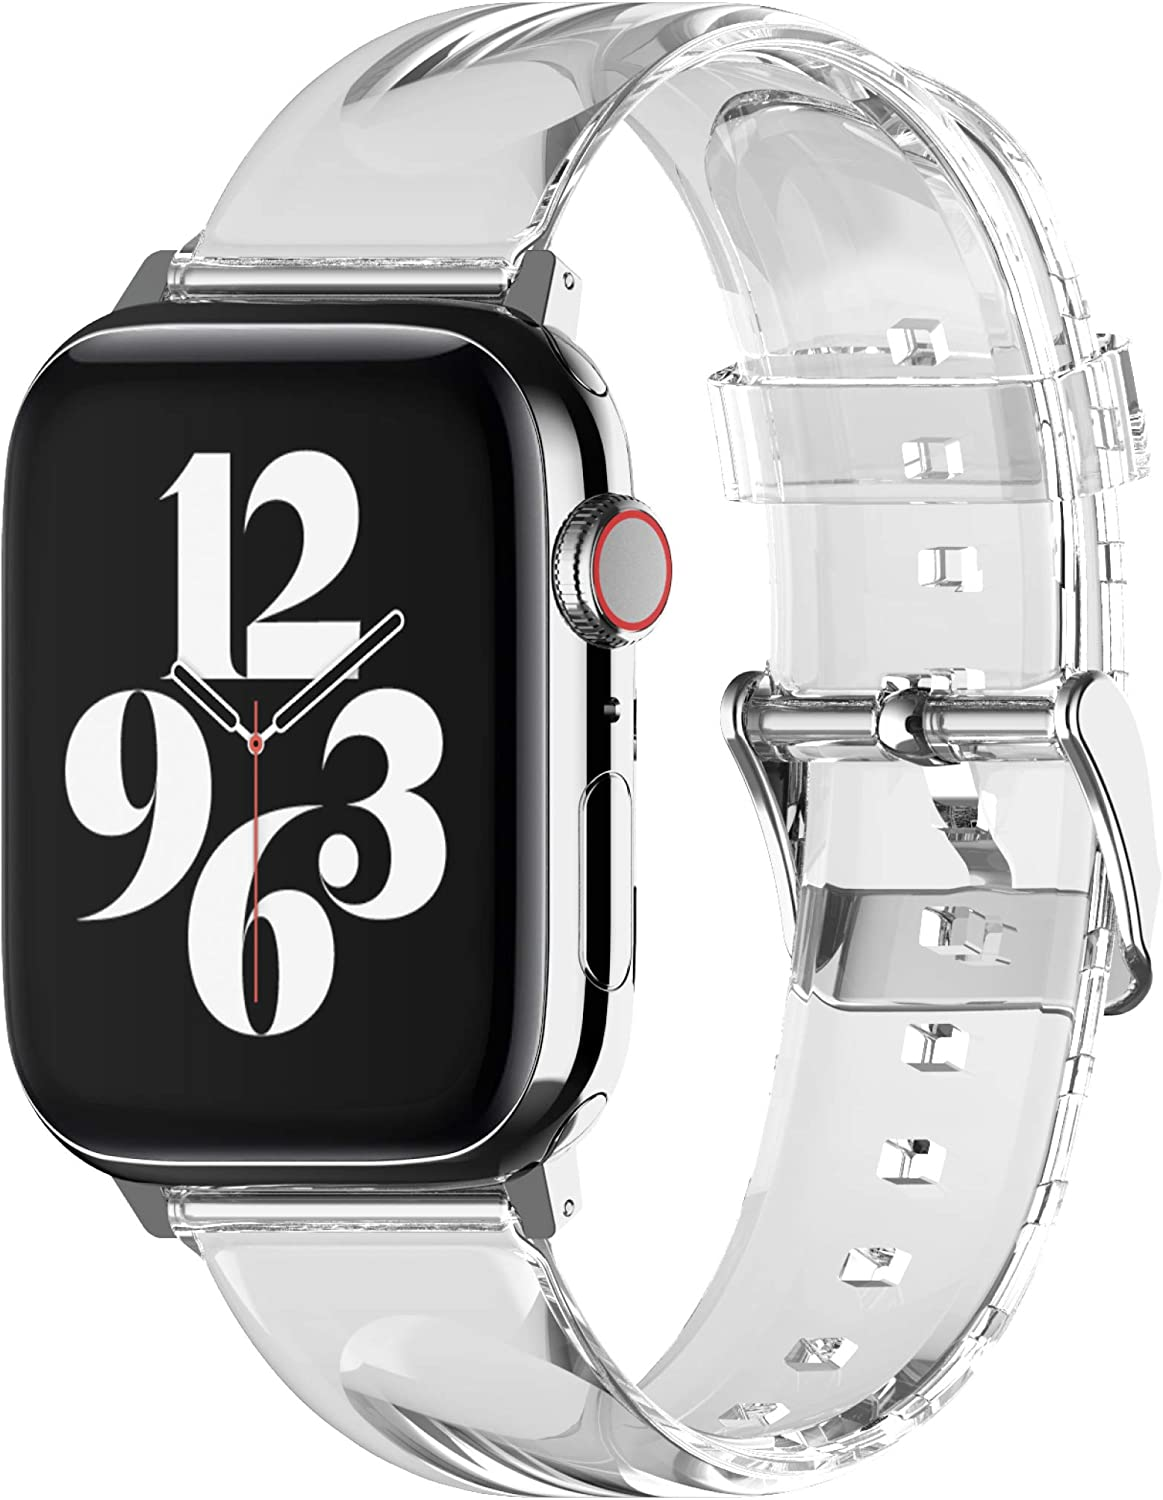 elago Clear Band Compatible with Apple Watch Band 38mm 40mm 42mm 44mm, compatible with iwatch Series 6/SE/5/4/3/2/1 – Transparent Protective Band, Watch Strap Connector Included